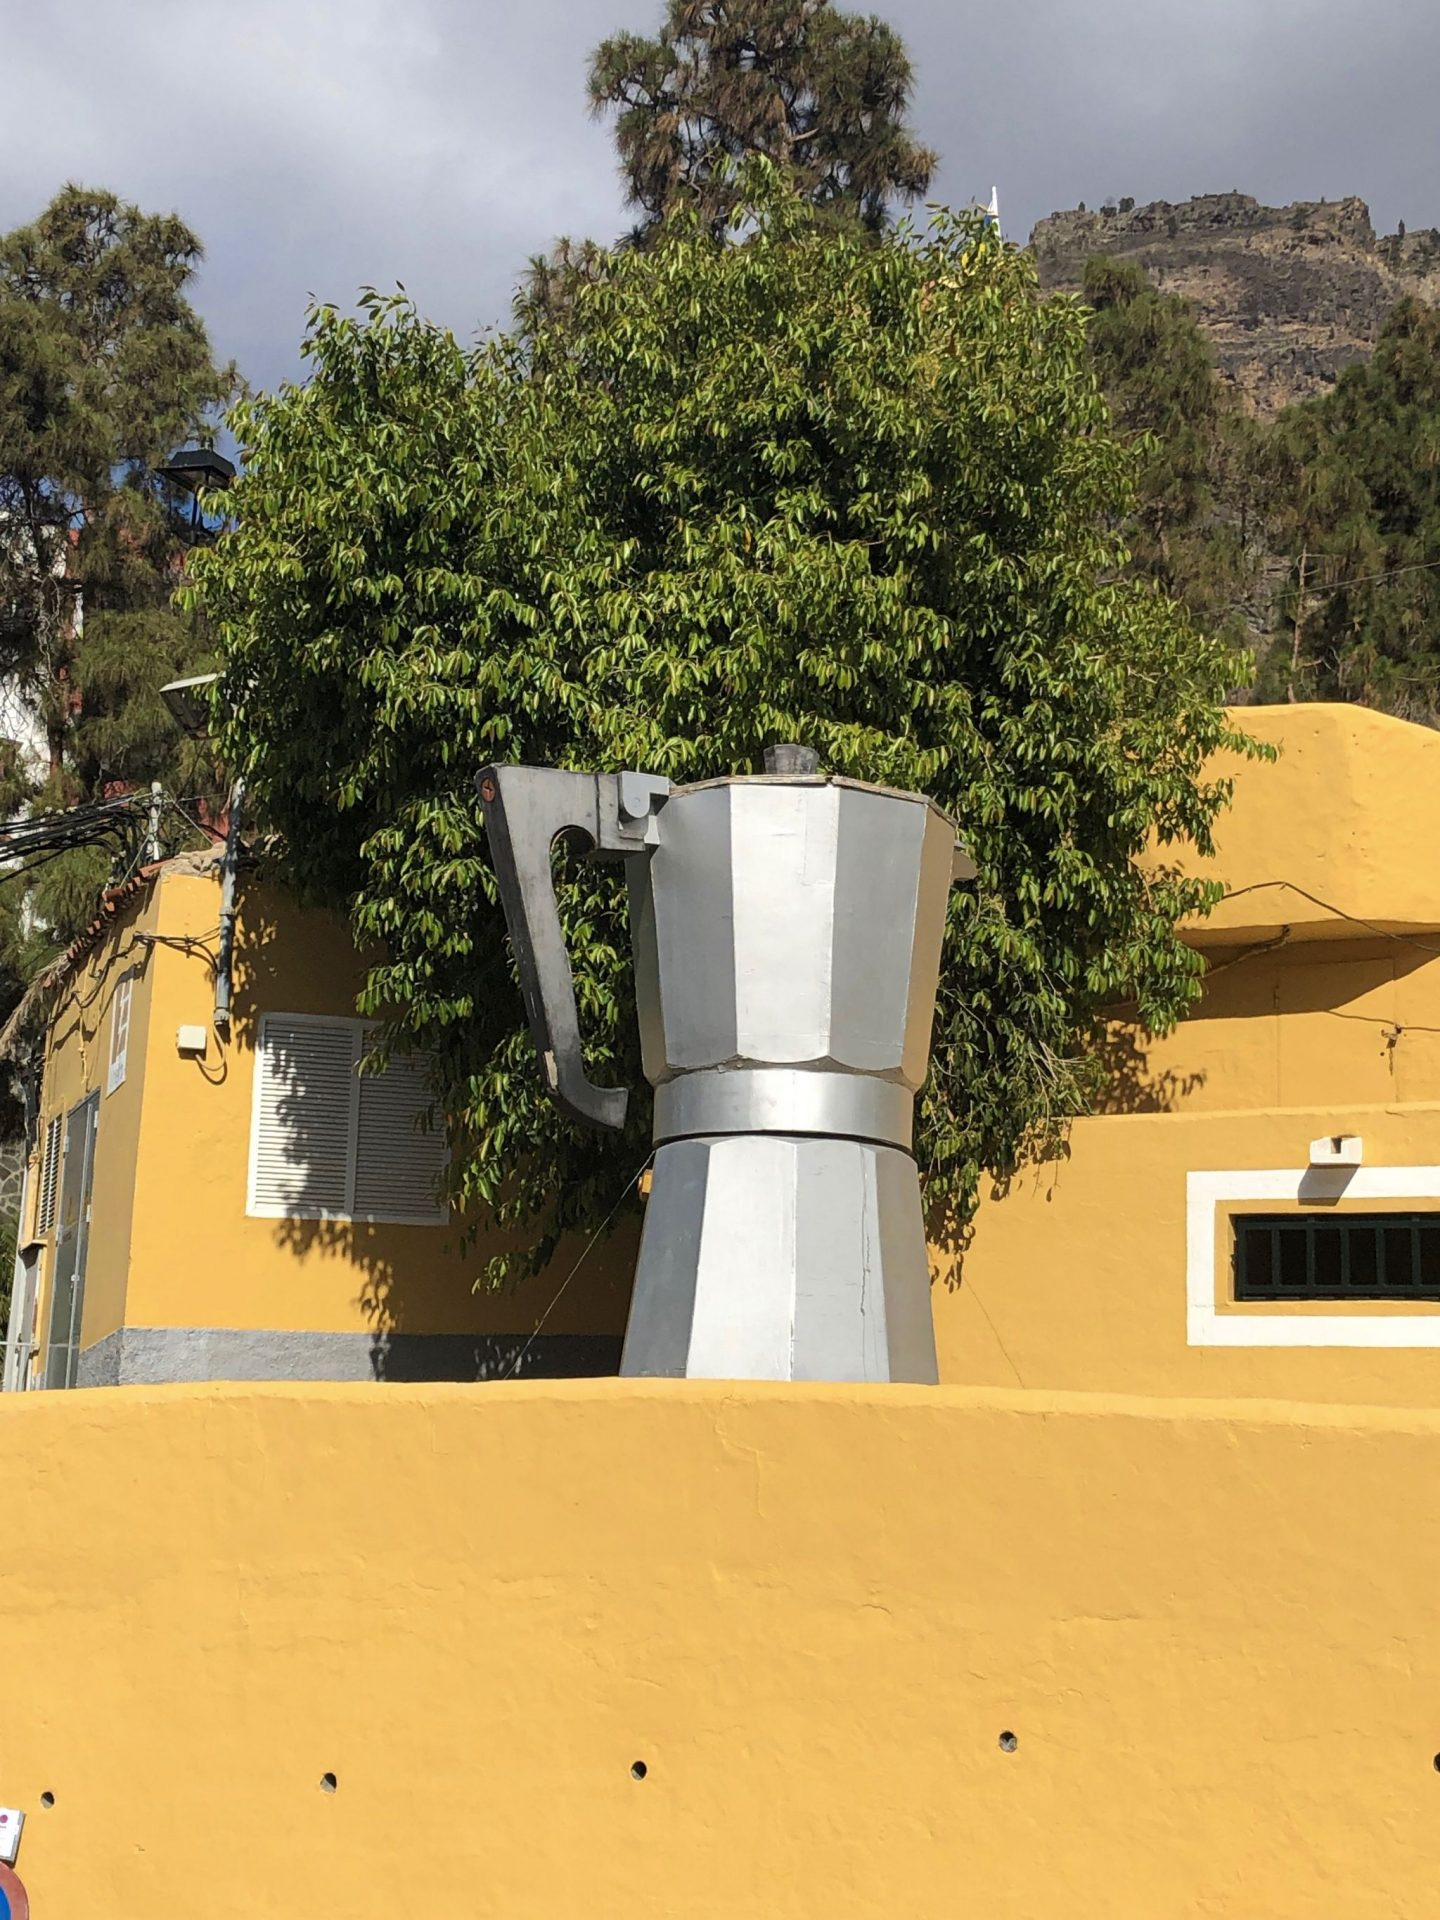 A giant coffee pot on the side of the road in Gran Canaria, Mogan